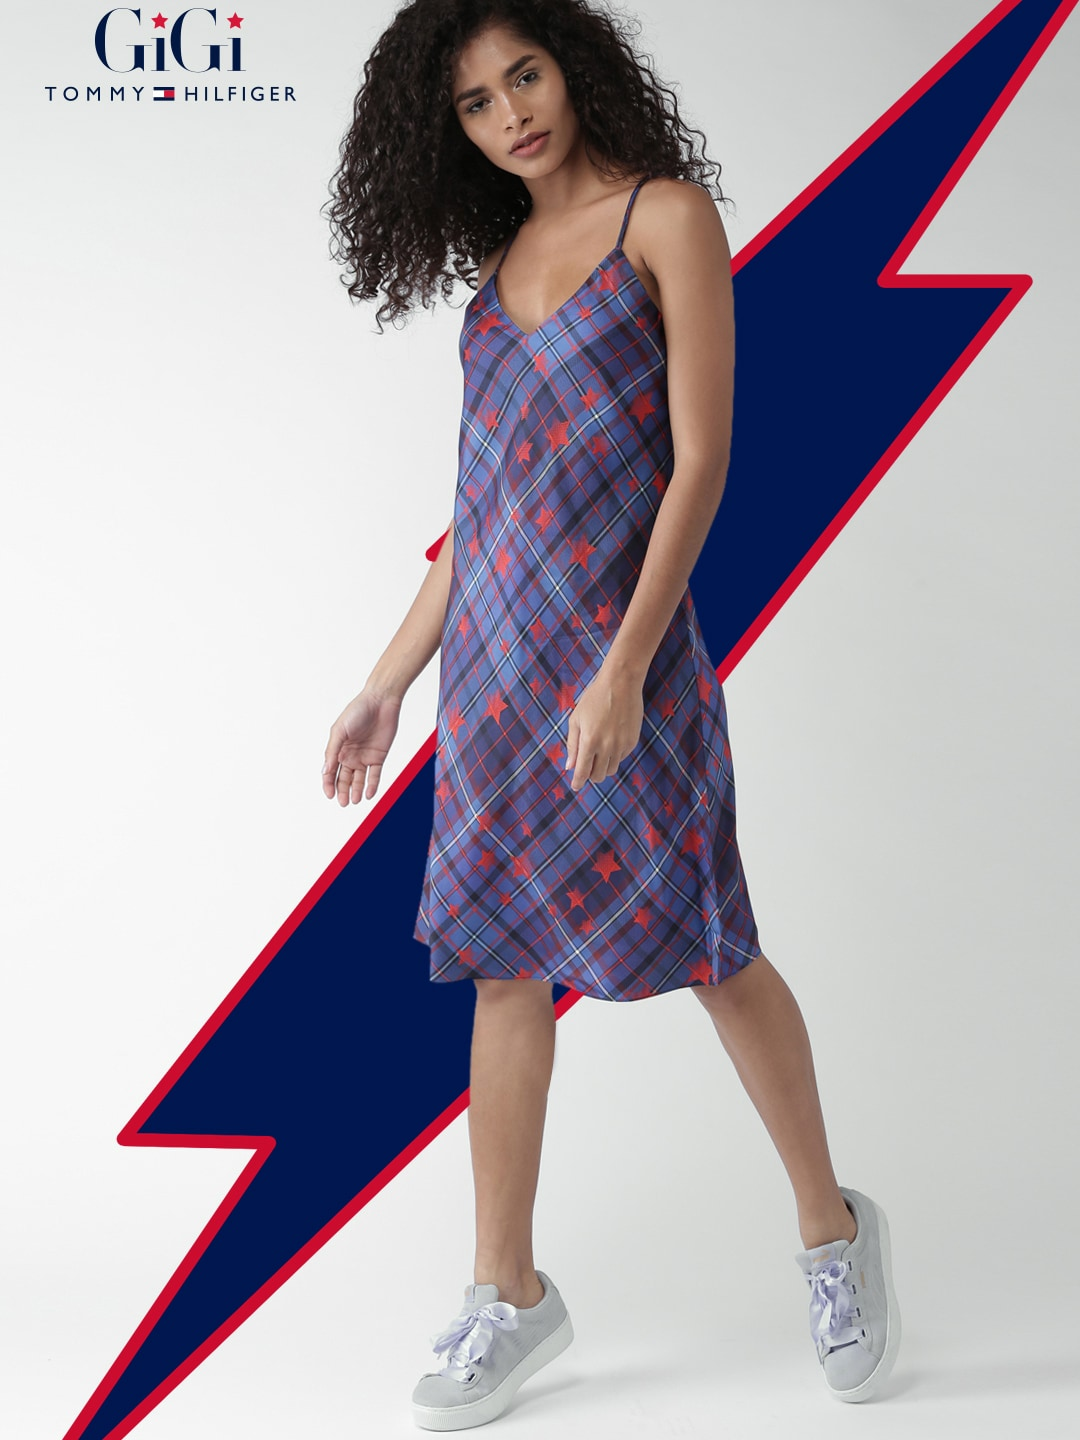 a18acce25ee Tommy Hilfiger Women Dresses - Buy Tommy Hilfiger Women Dresses online in  India